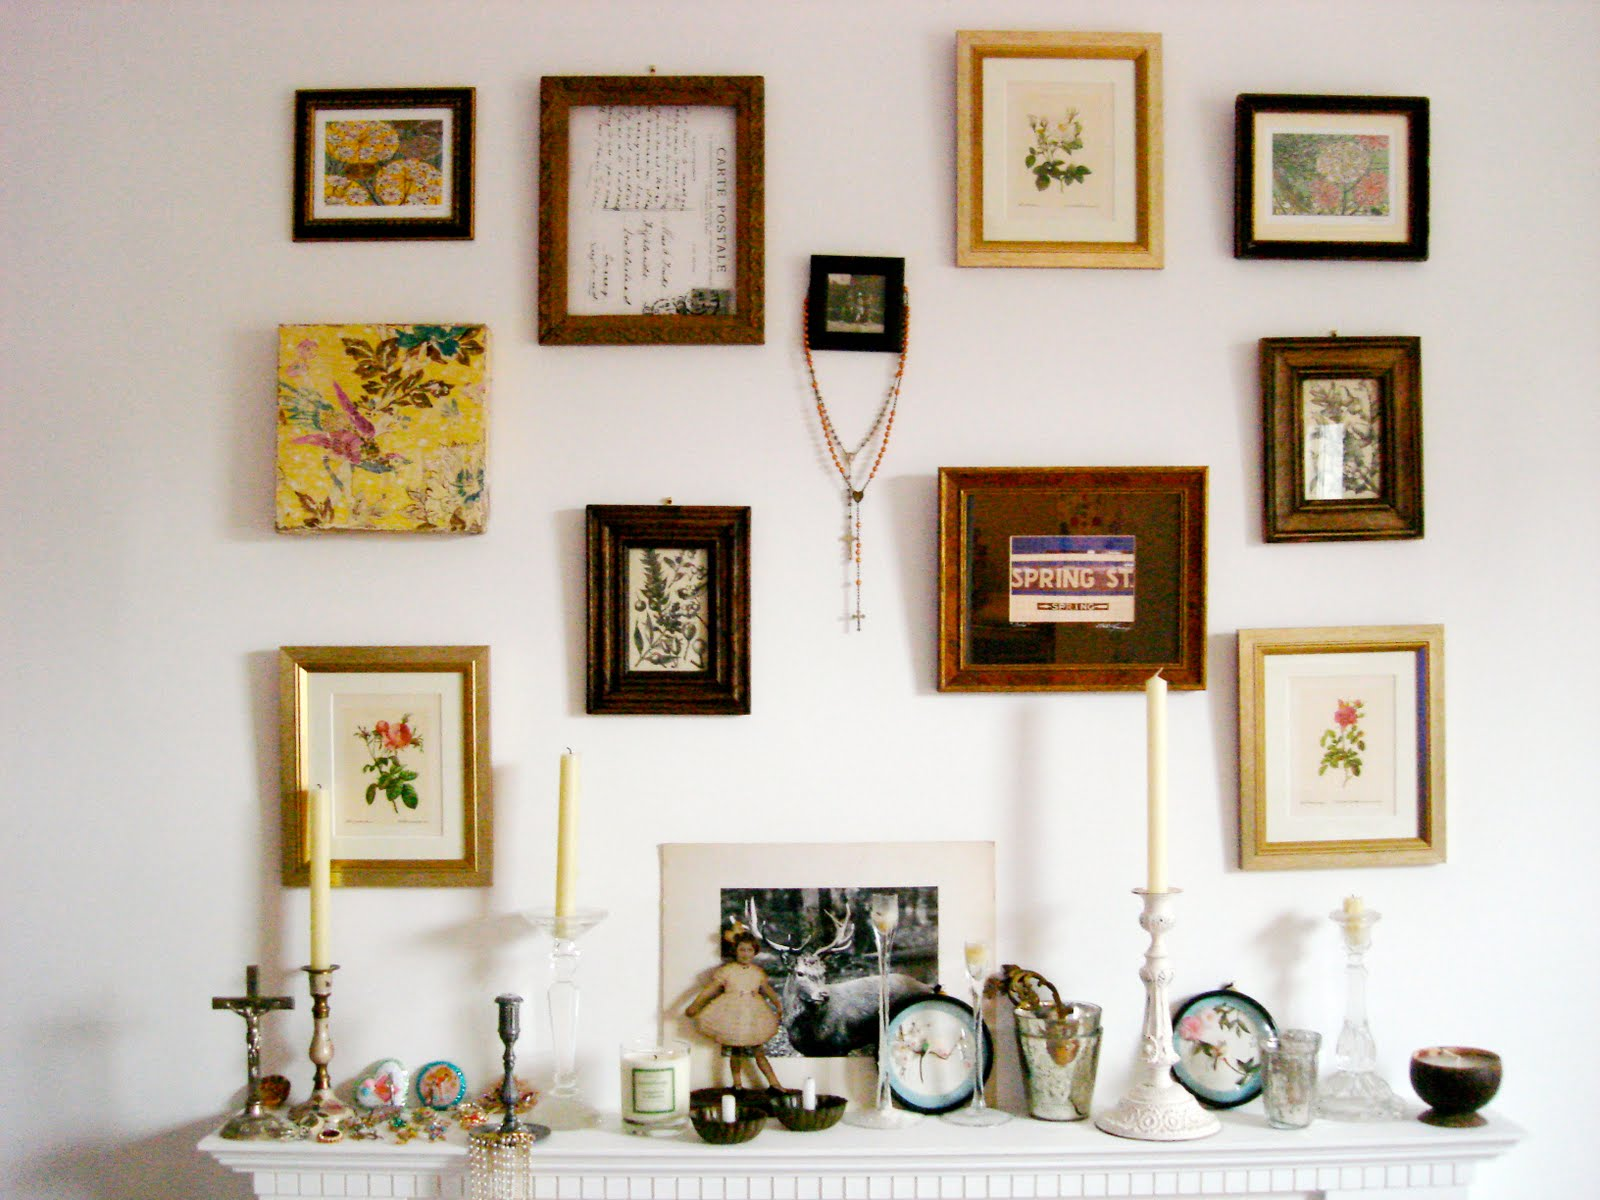 Cuadros y marcos en paredes frames on the wall warm deco - Composicion cuadros pared ...